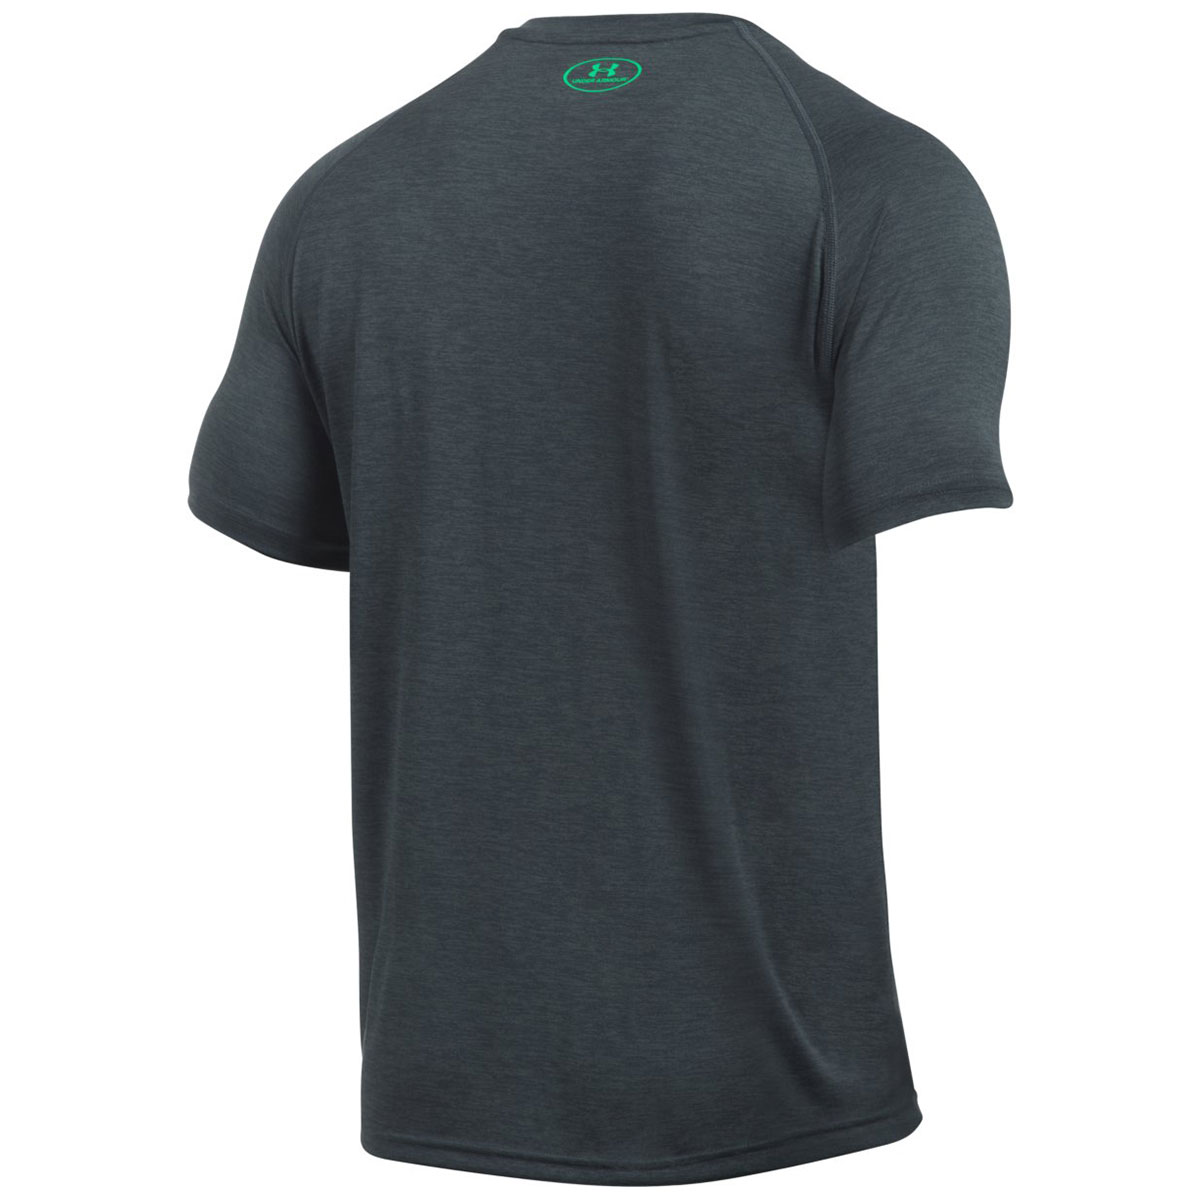 Under-Armour-Mens-UA-Tech-SS-T-Shirt-HeatGear-Training-31-OFF-RRP thumbnail 89